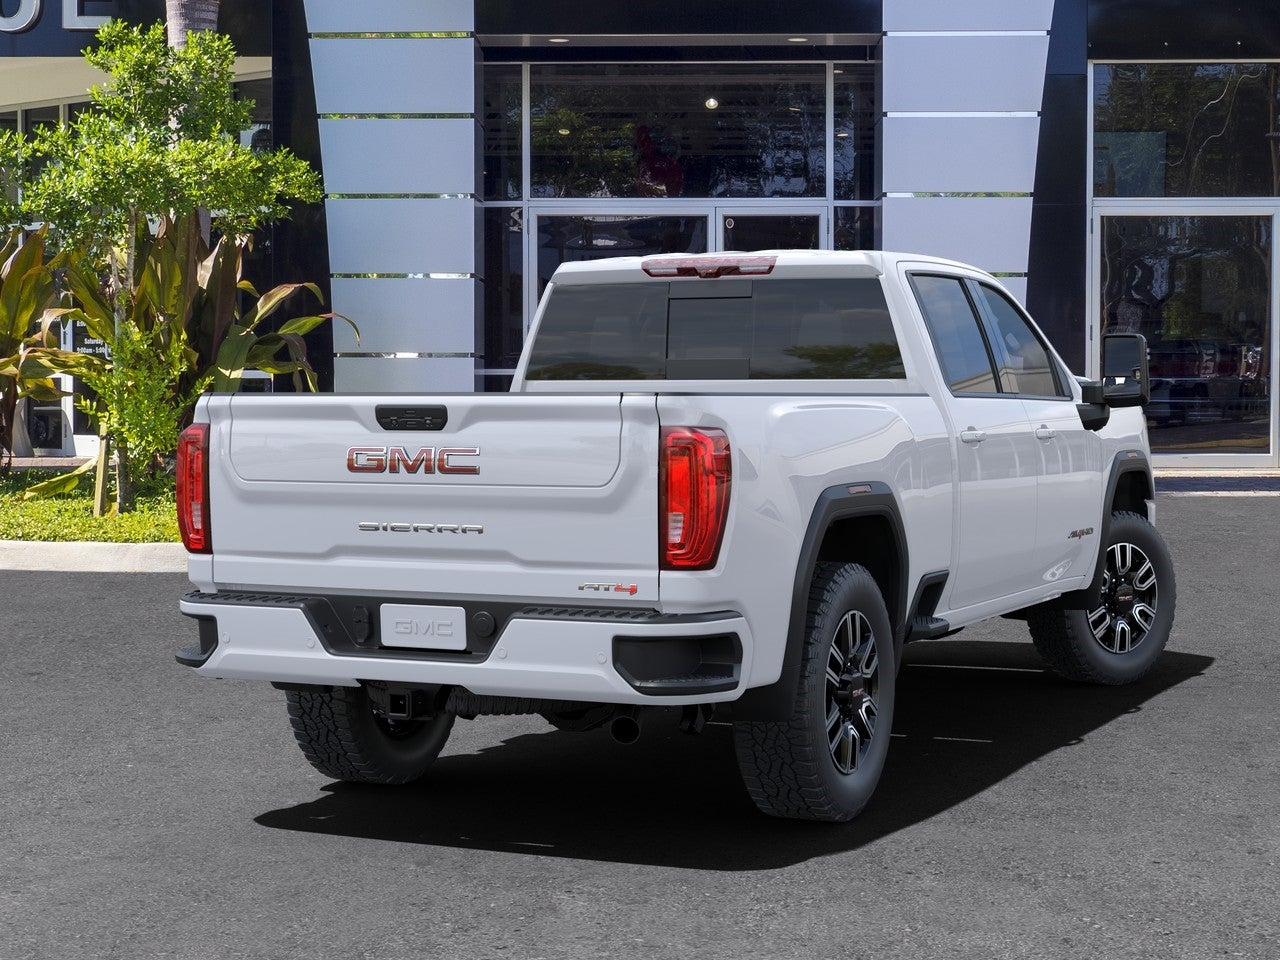 2021 GMC Sierra 2500 Crew Cab 4x4, Pickup #T21134 - photo 24